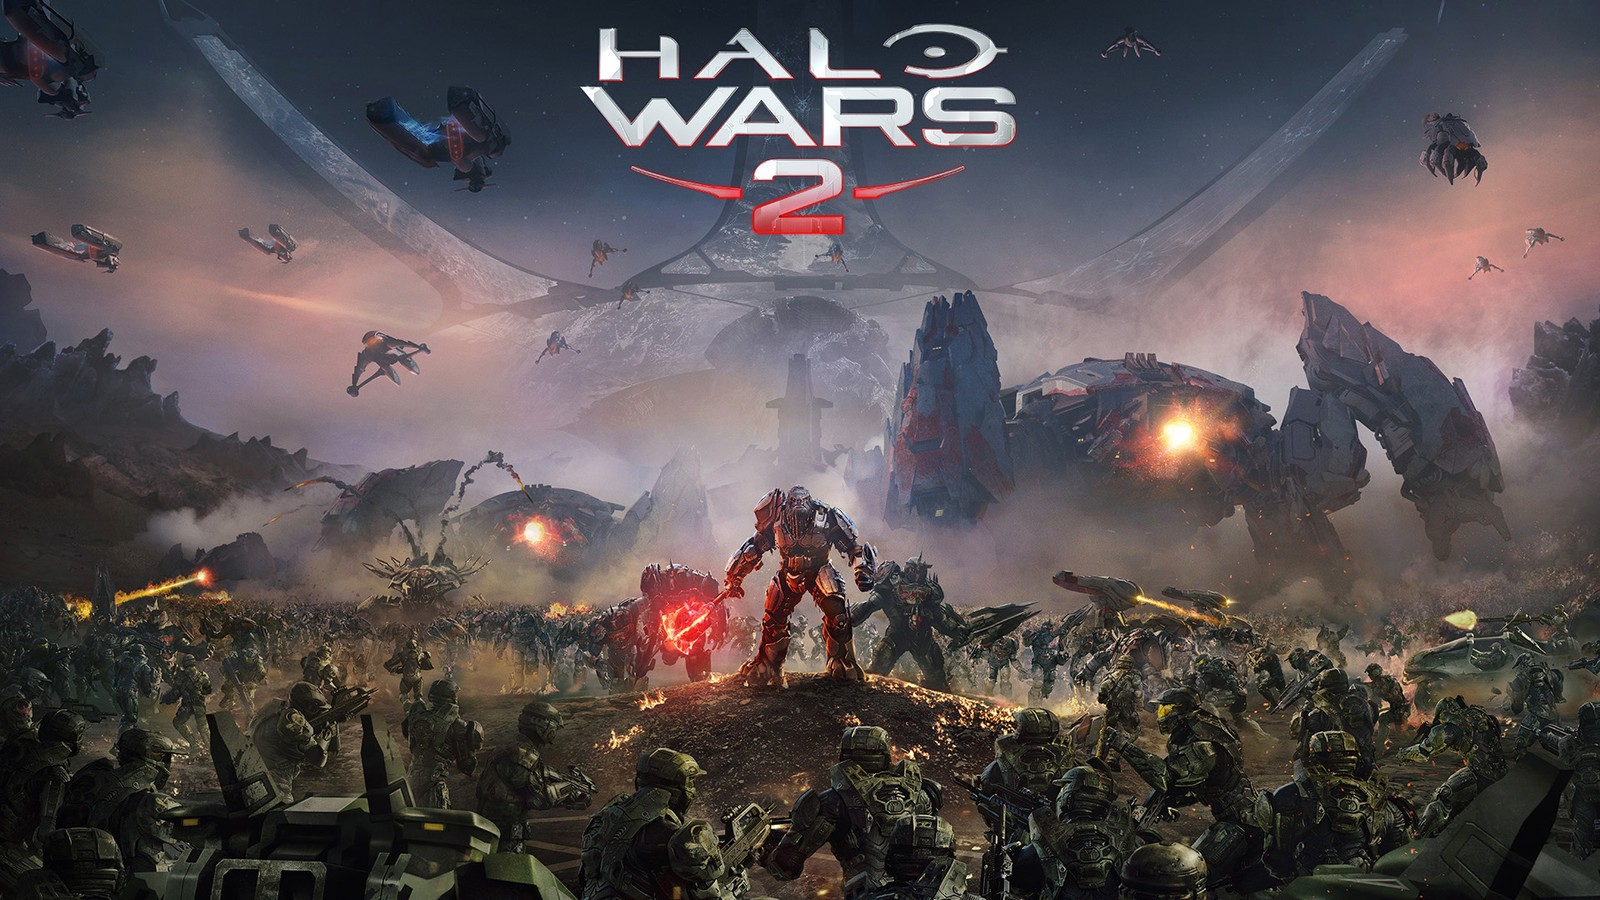 Download Halo Wars 2: Complete Edition Build 1130815 + All